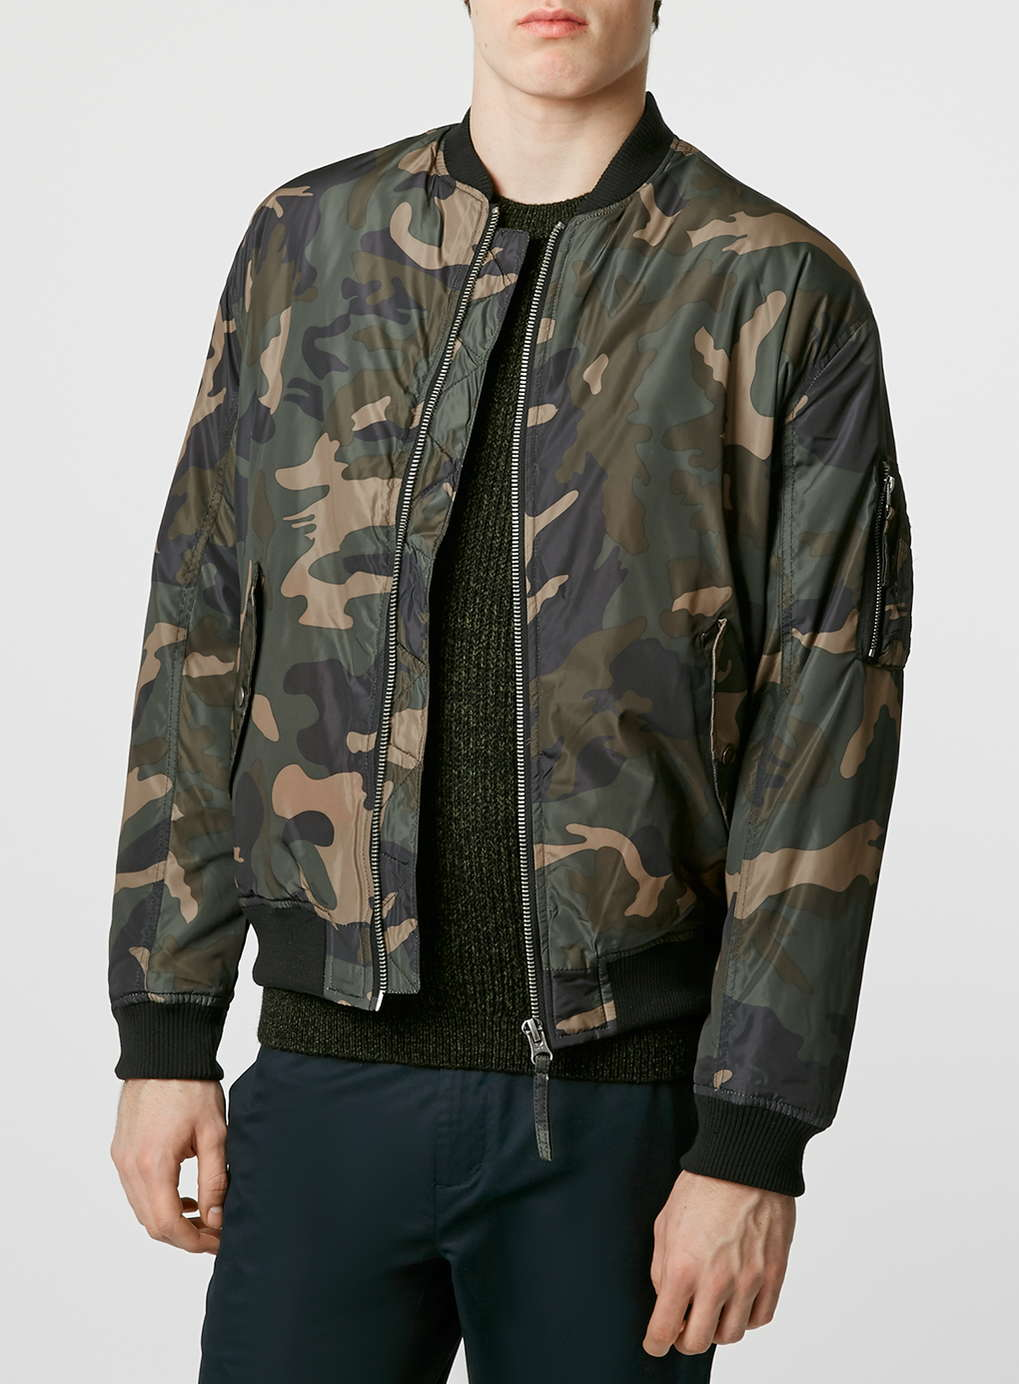 e898d8f8bd767 Our stylists will find you something similar if you sign up for Thread.  Thread is an online personal styling service for men, ...